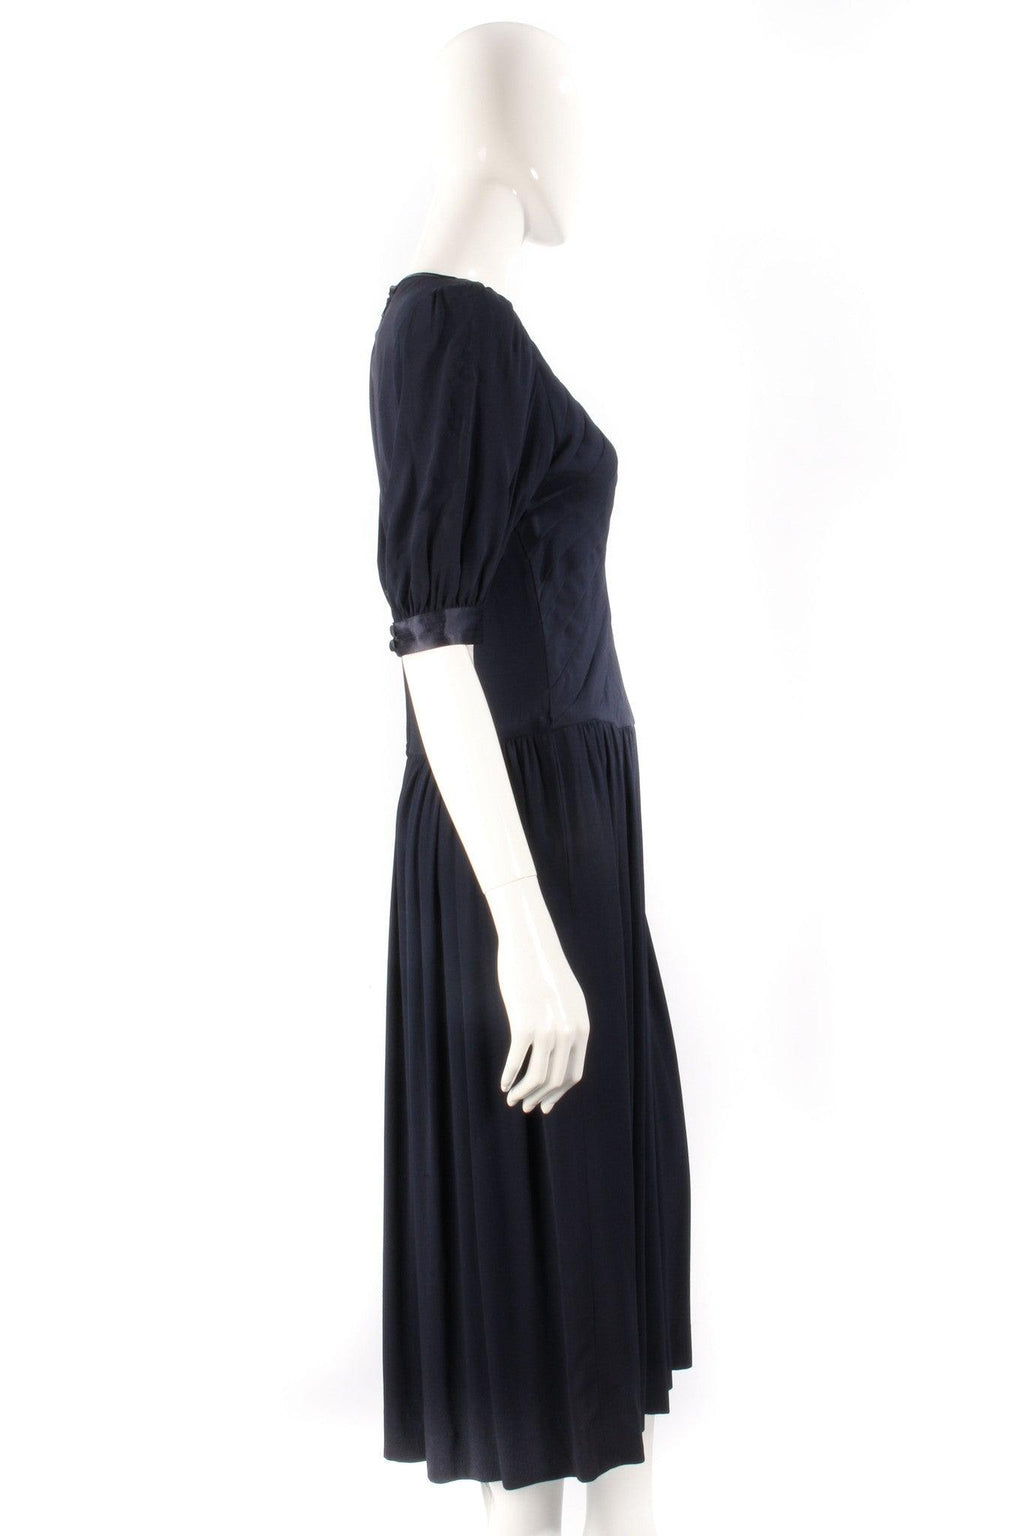 Albert Nipon Boutique Vintage Full Length Dress Navy Blue UK Size 10/12